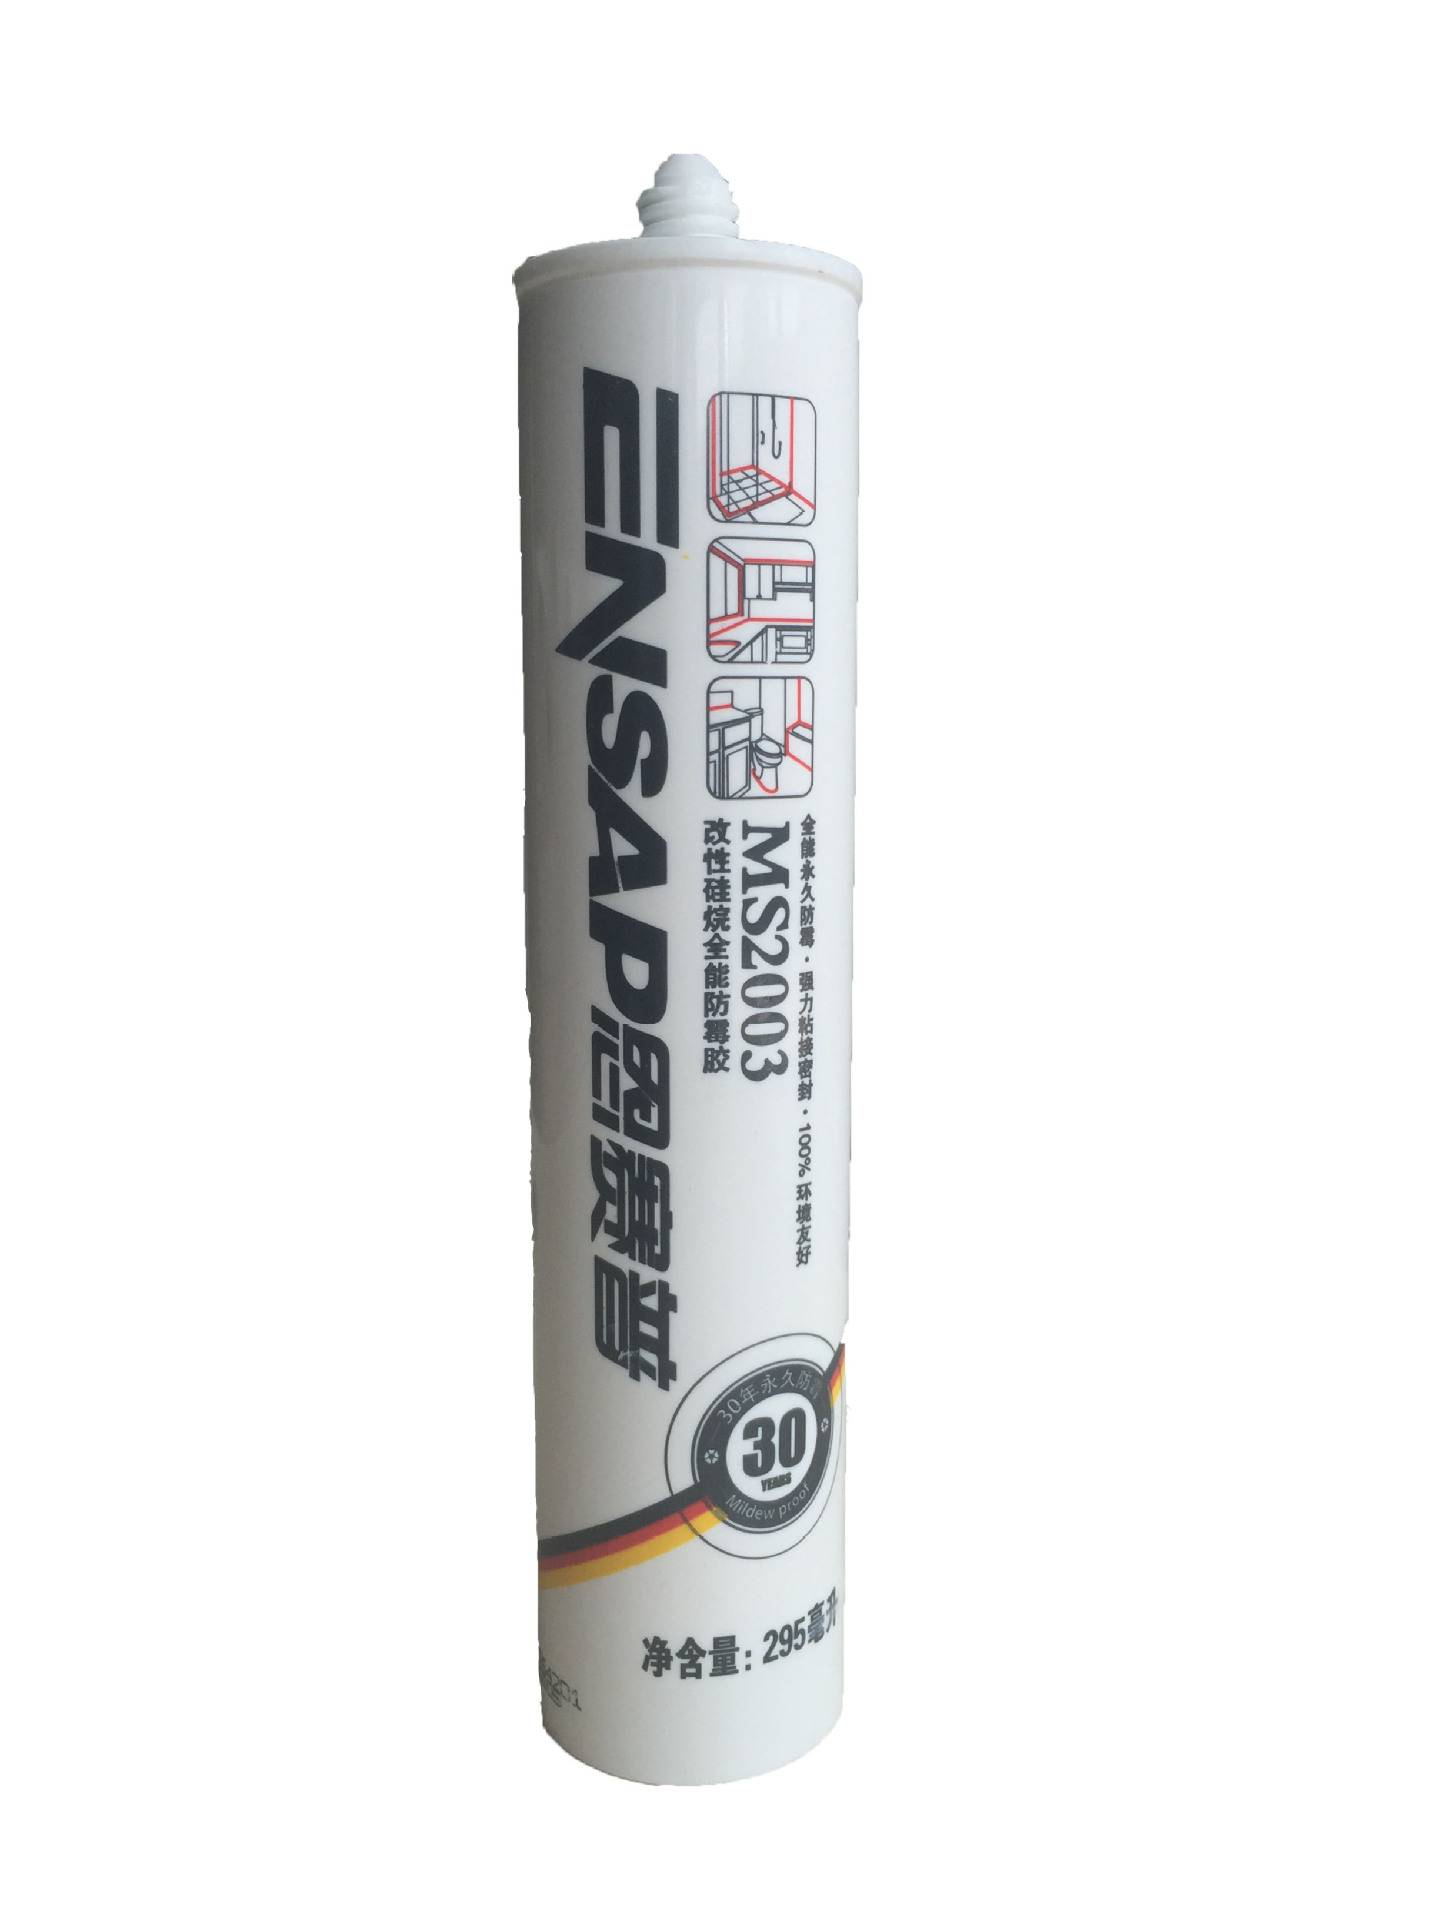 One Component MS Mildew Proof Sealant for building MS2003